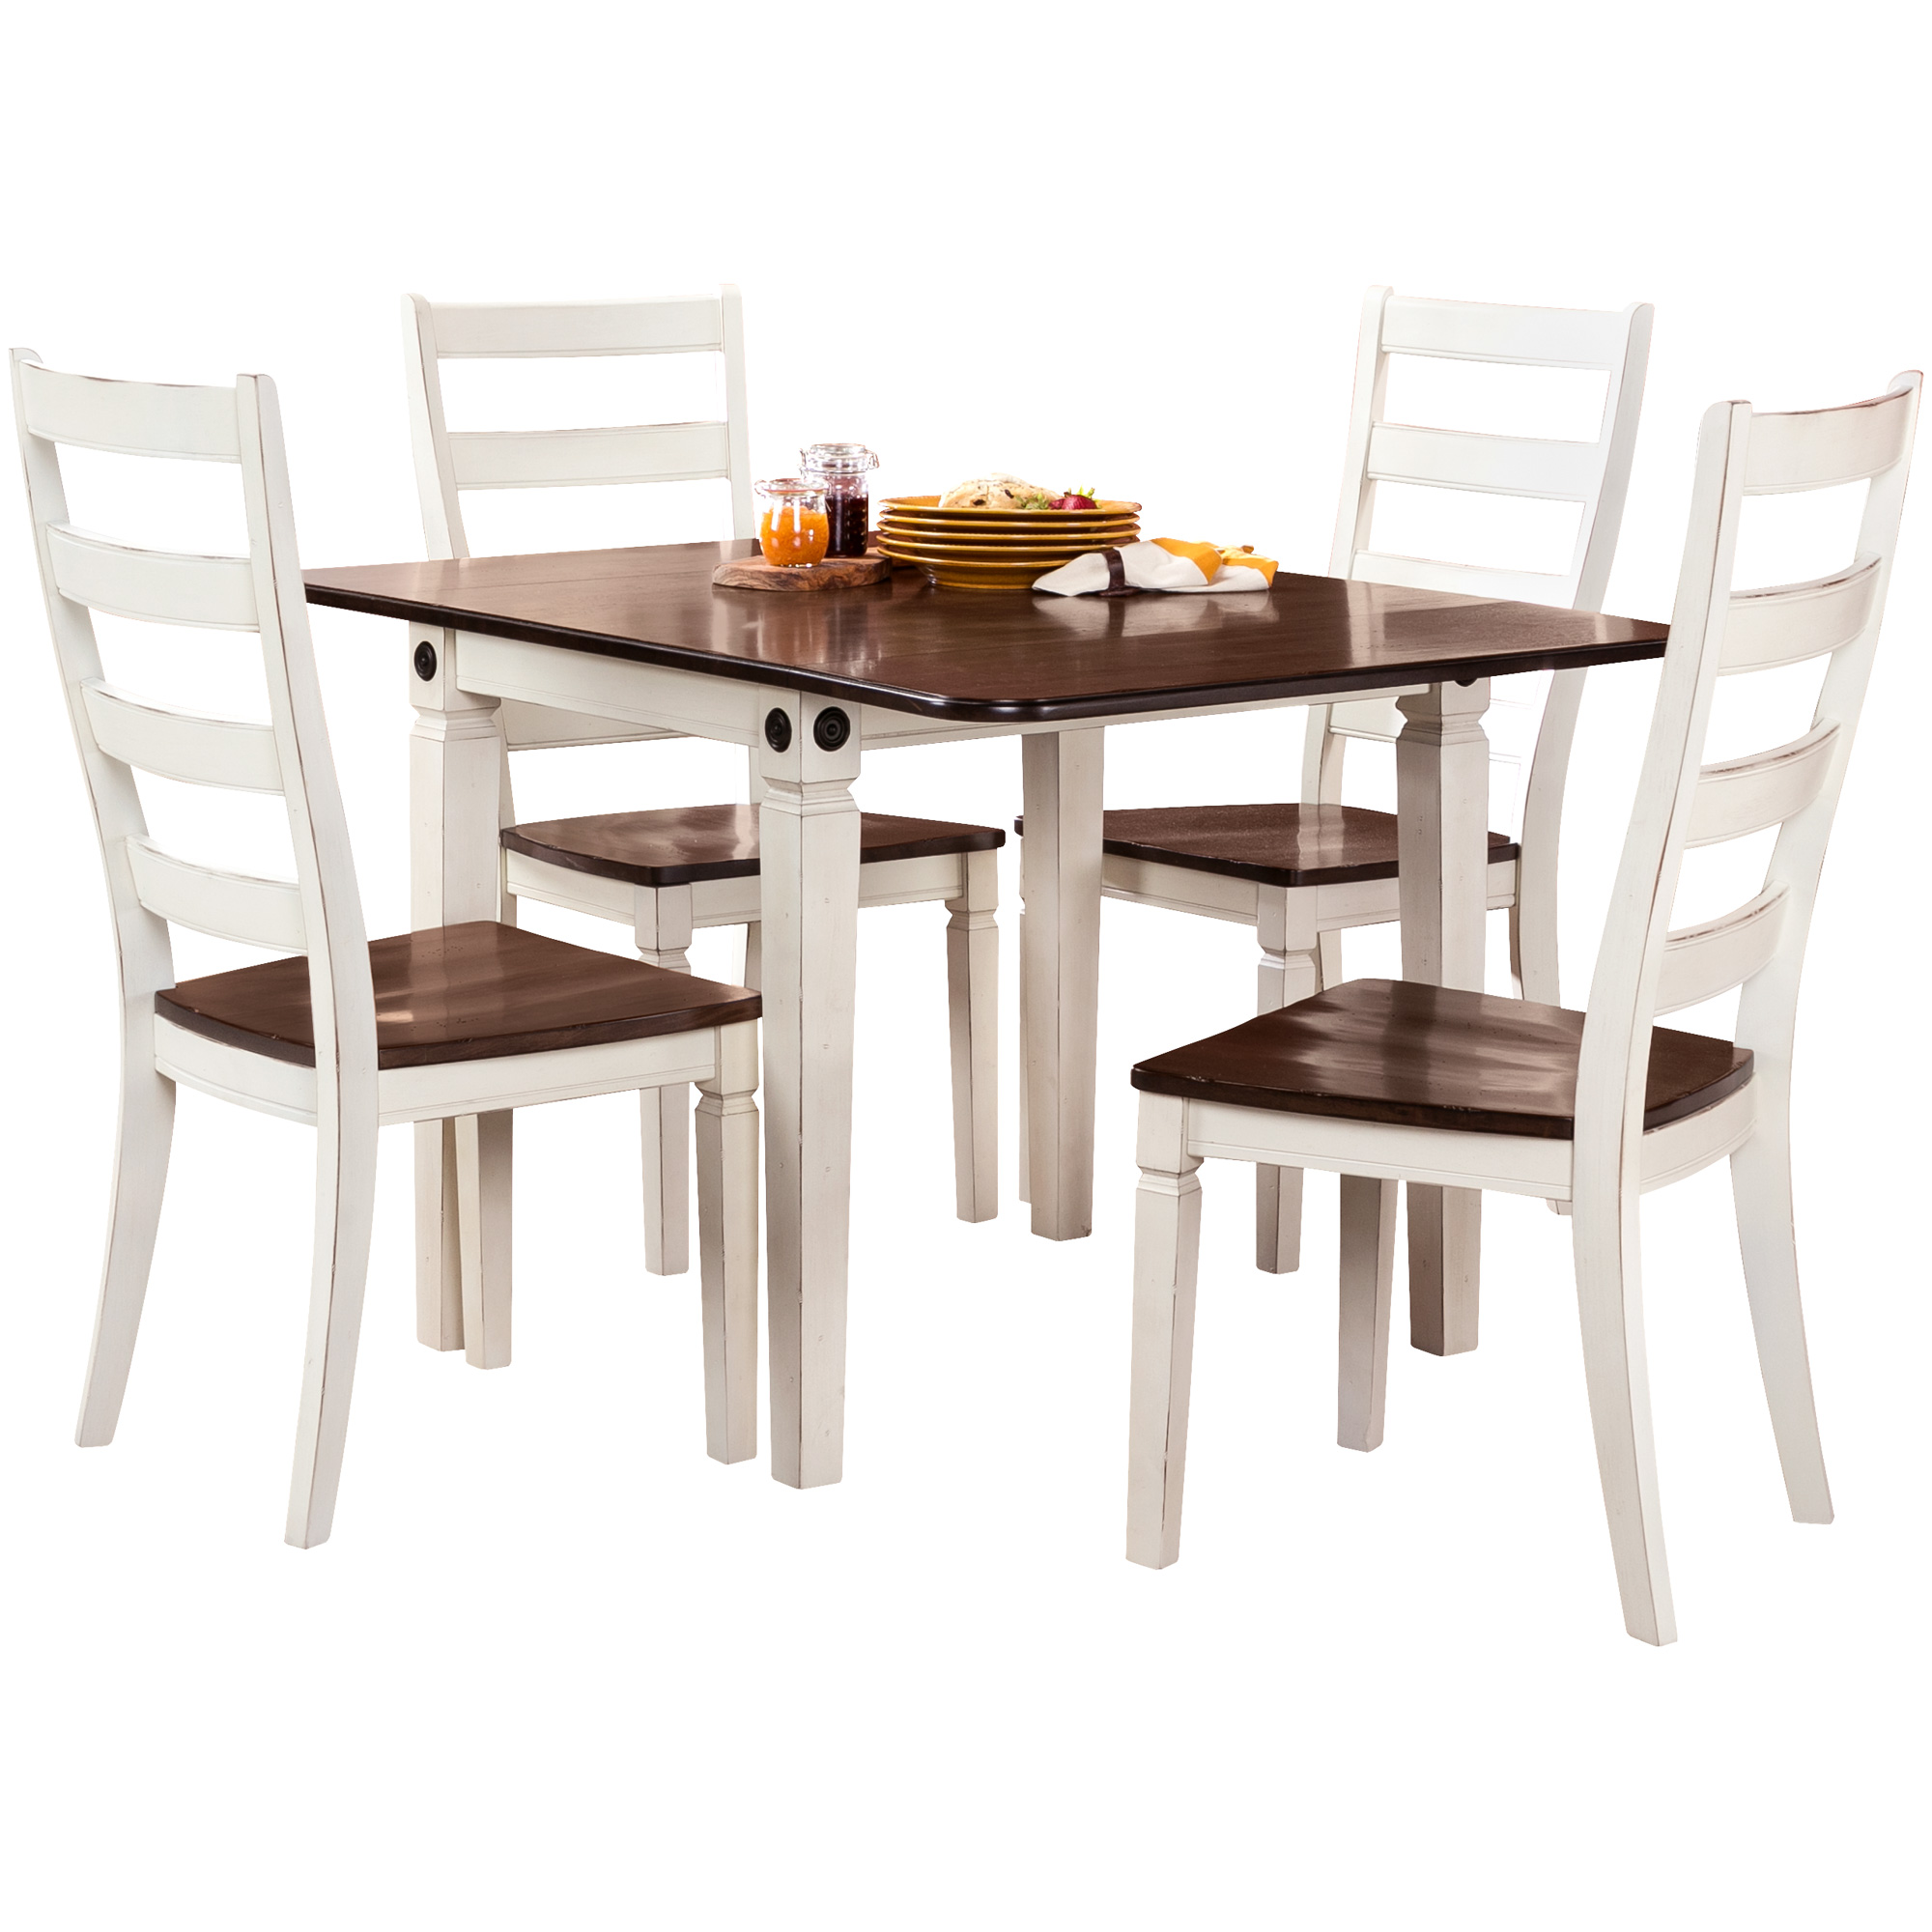 Intercon | Glennwood 5 Piece Antique White Dining Set